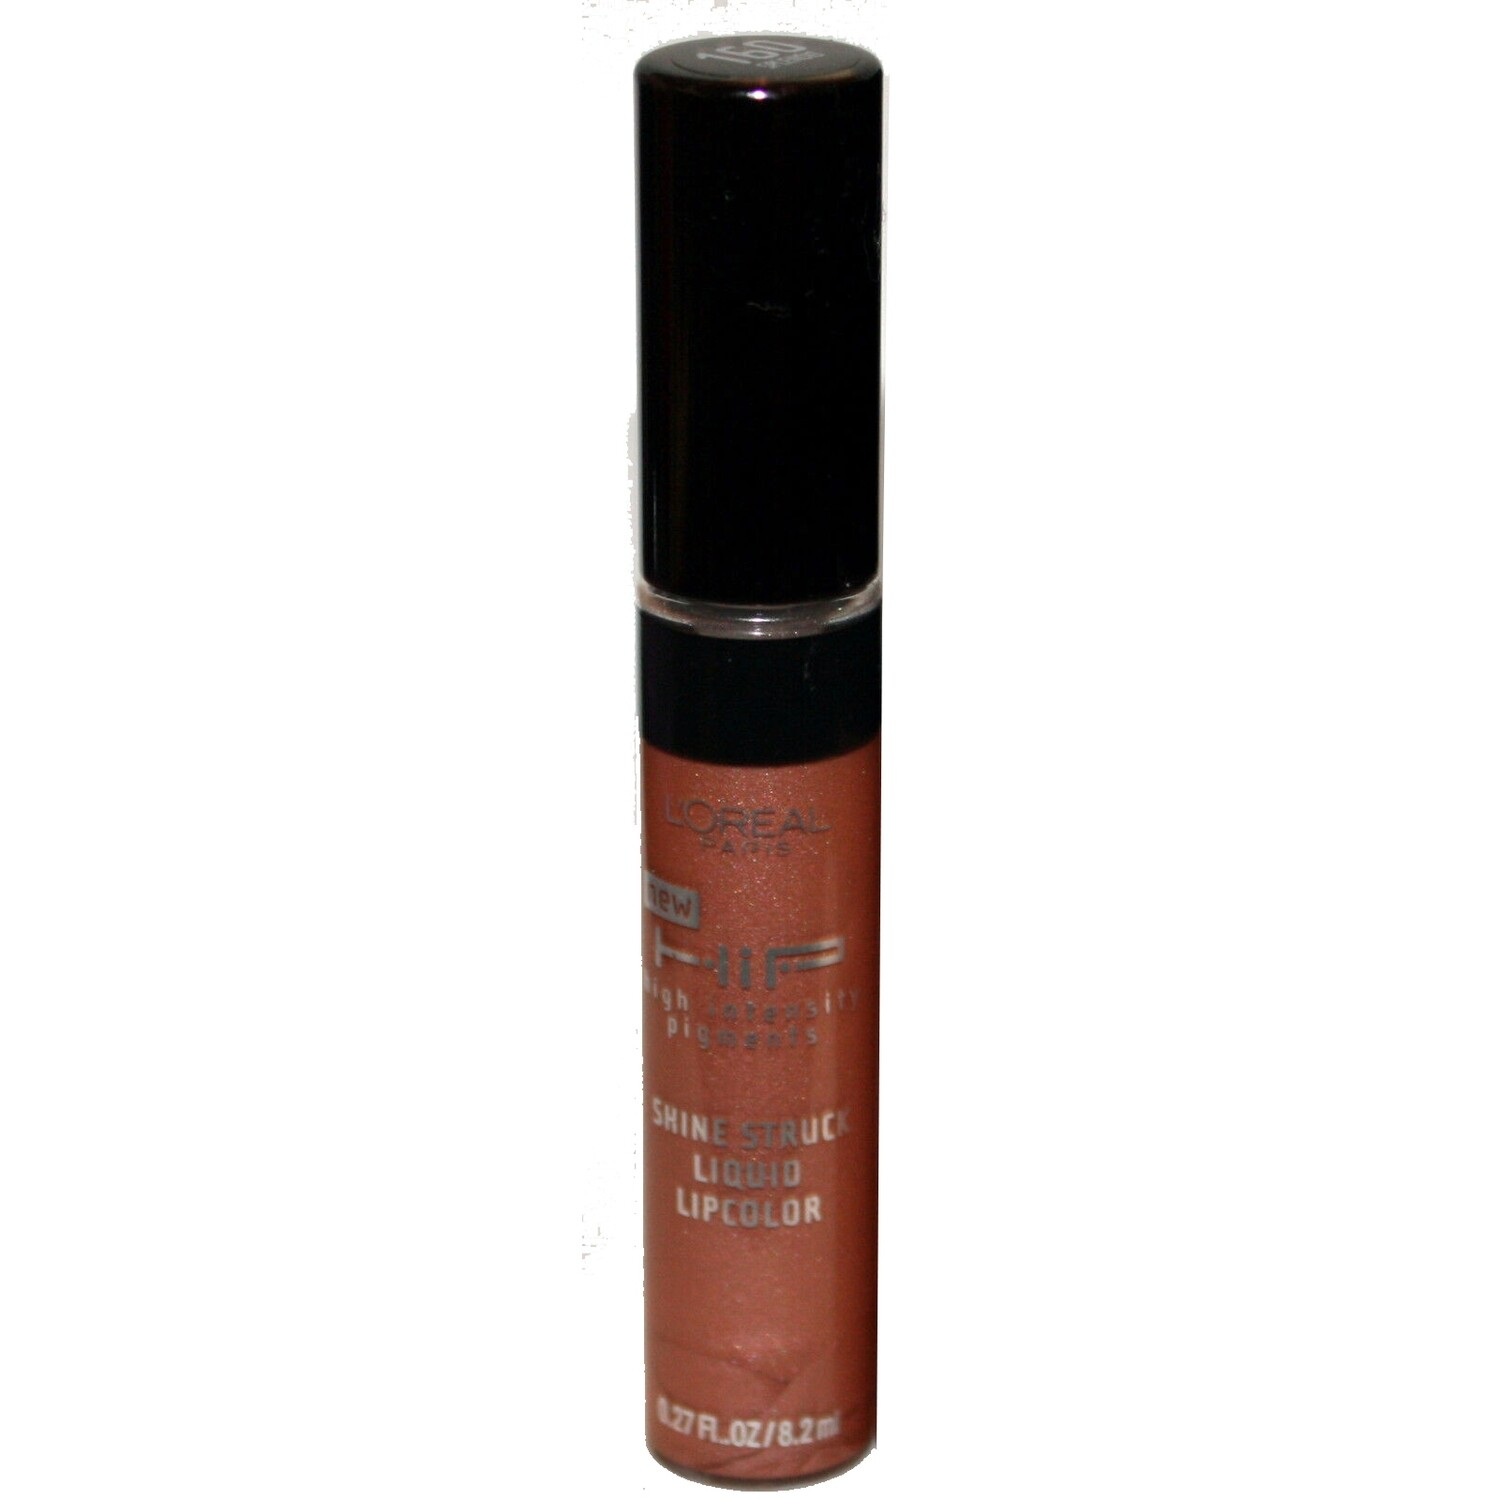 2 L'Oreal HIP Shine Struck Liquid Lip Color Gloss #160 SPLENDID .27 oz